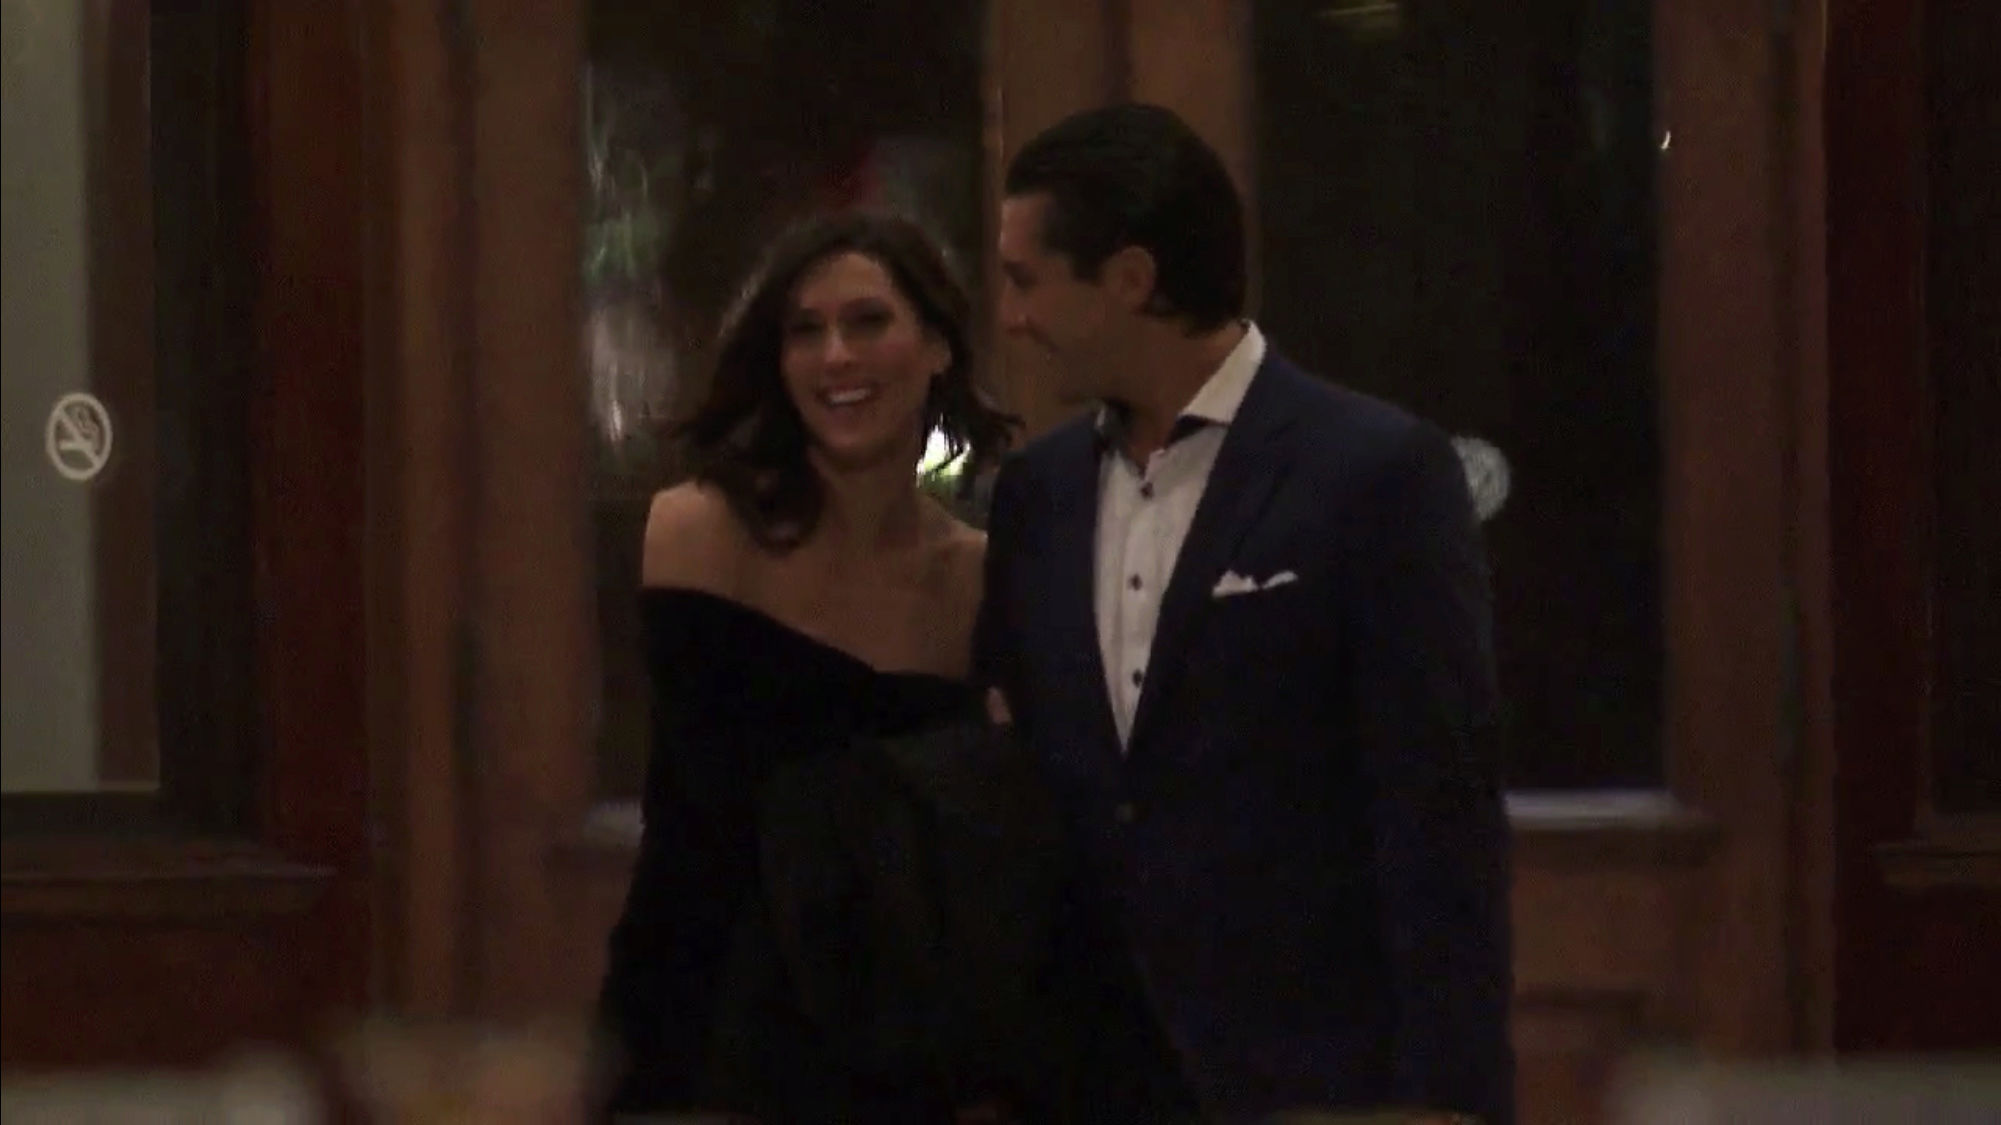 Bachelorette 14 - Becca Kufrin - ScreenCaps - NO Discussion - *Sleuthing Spoilers* 2253f110